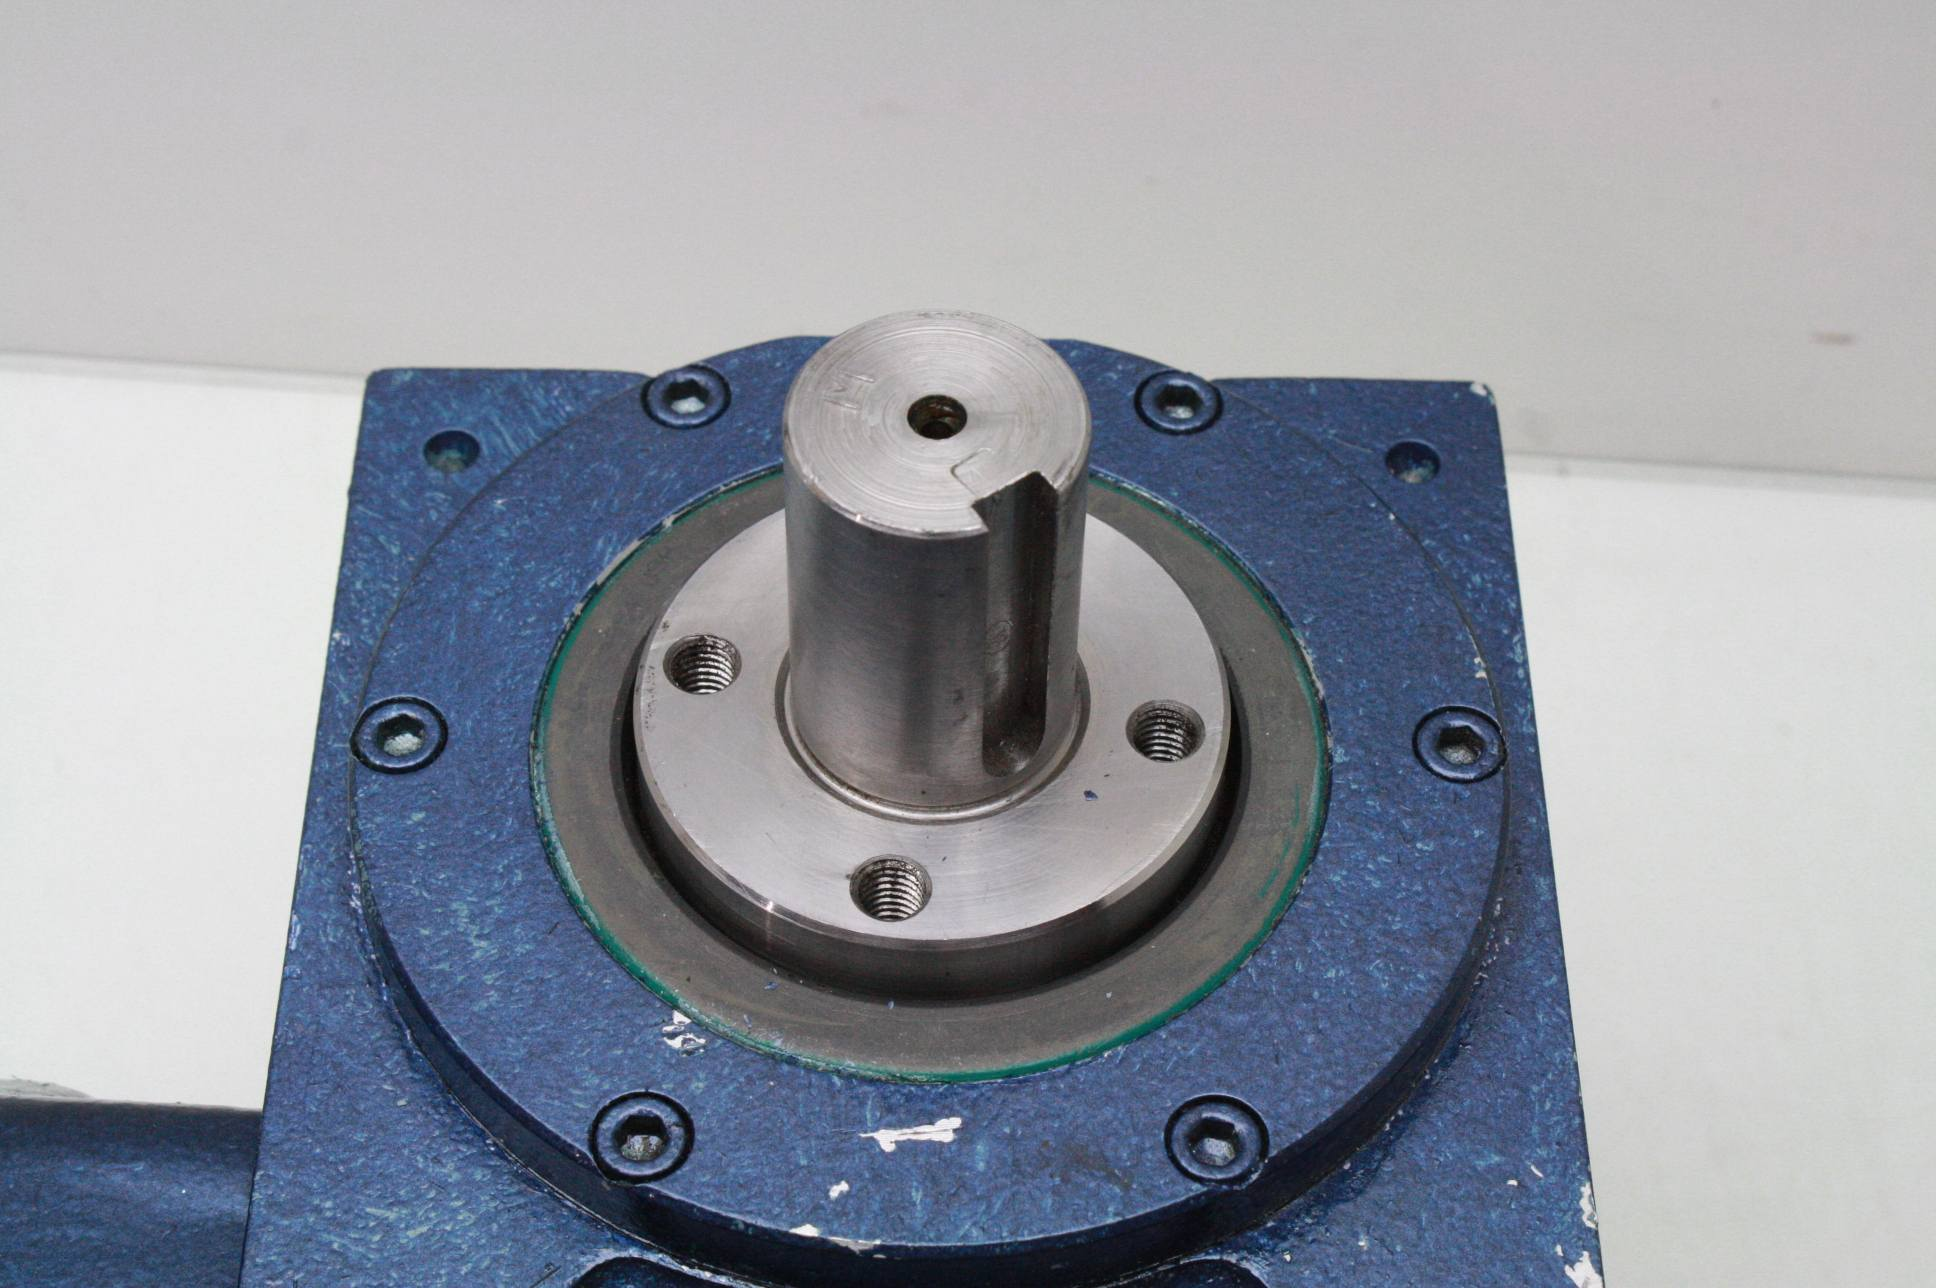 Camco M350rgs5h20 120 Lh Rotary Indexer Reducer 5 Position 72 Degree Period Used Motion Constrained Surplus